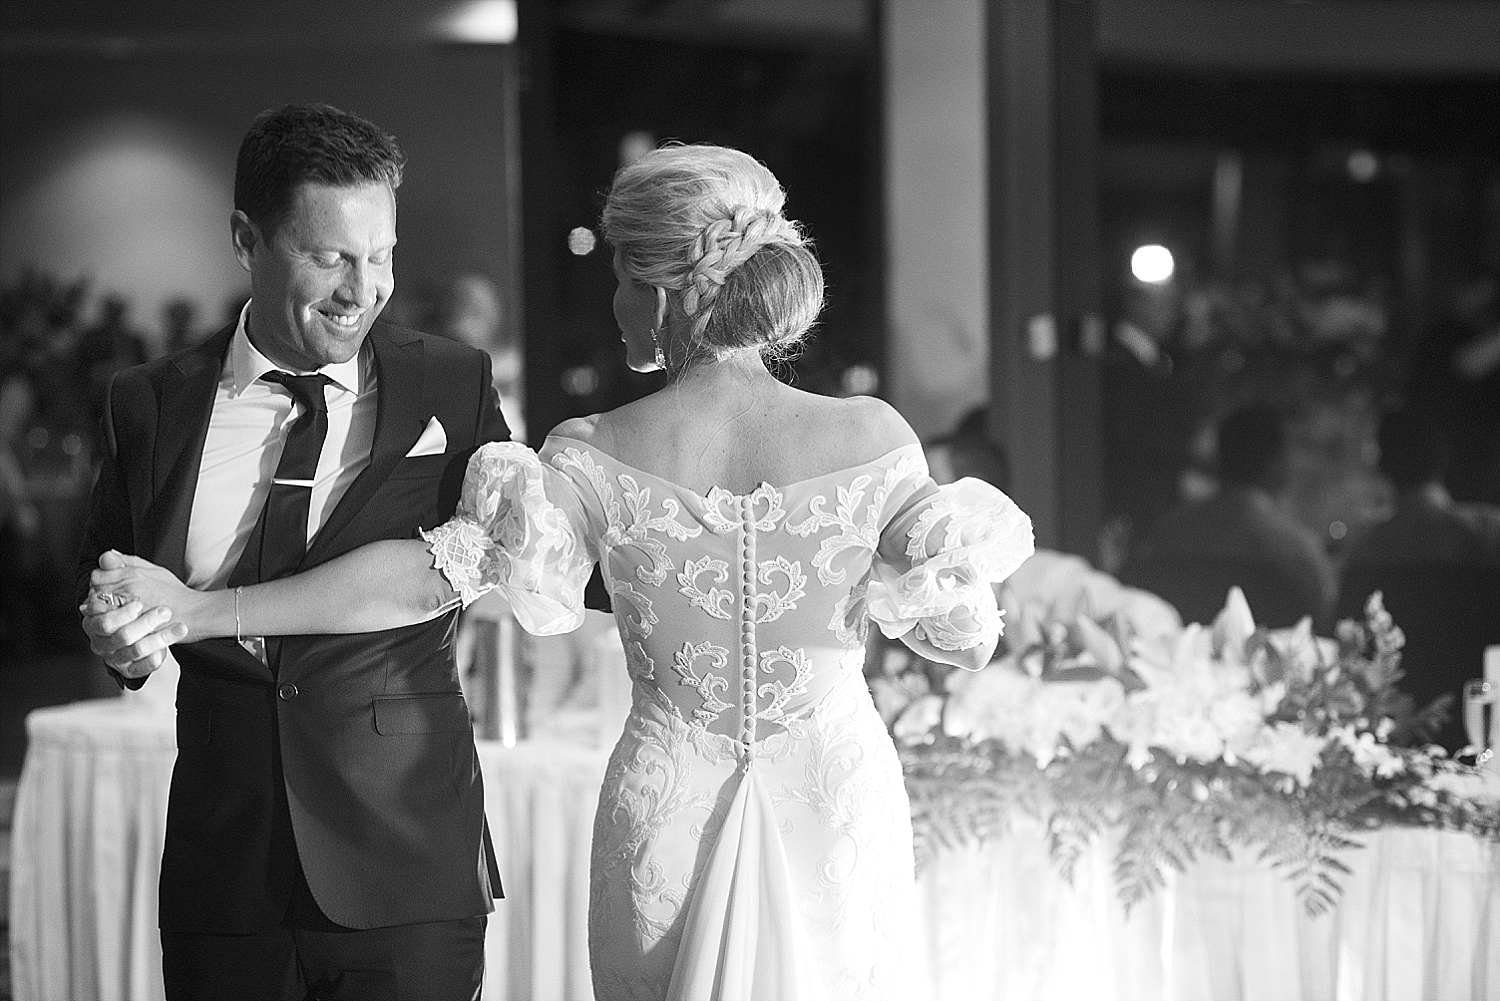 55bridal waltz wedding perth67.jpg